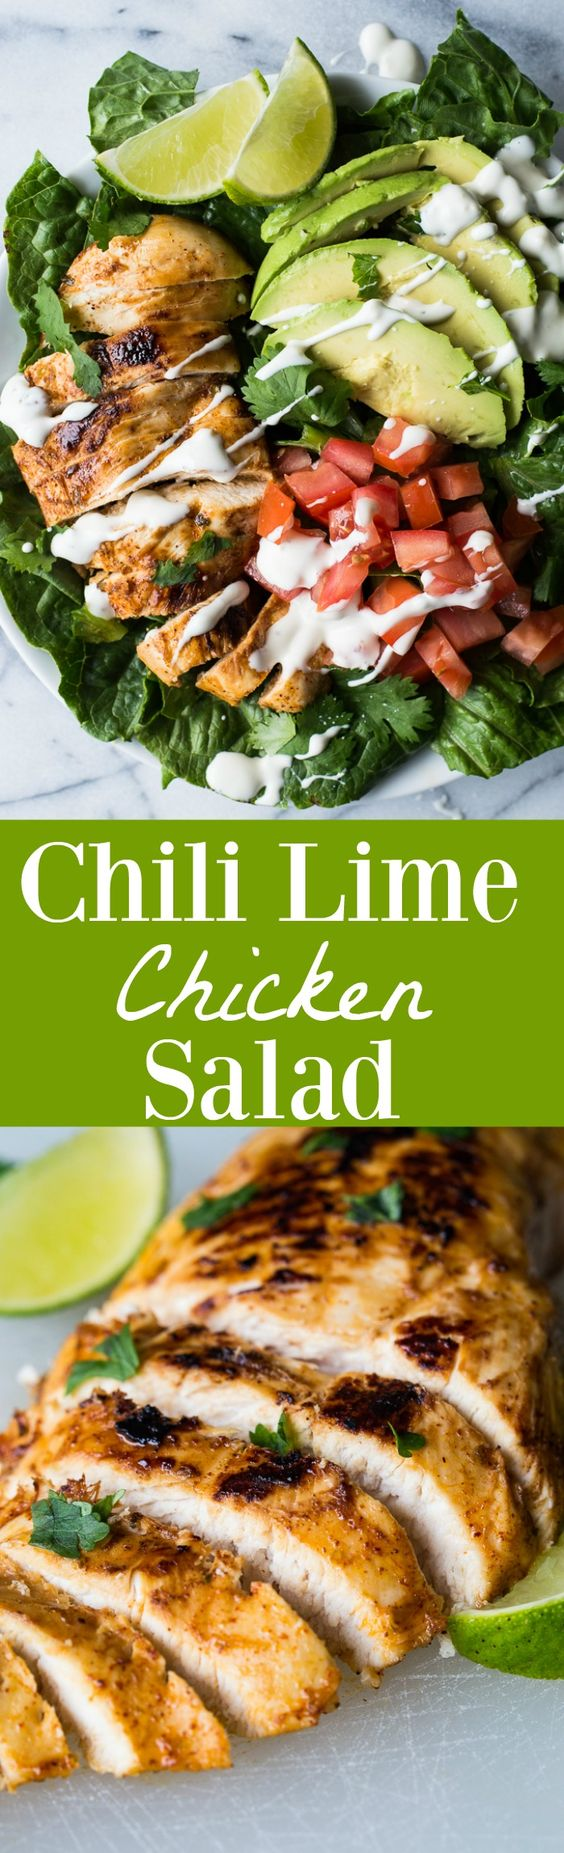 This tender, juicy, zesty chili lime chicken is perfect for topping your salad!